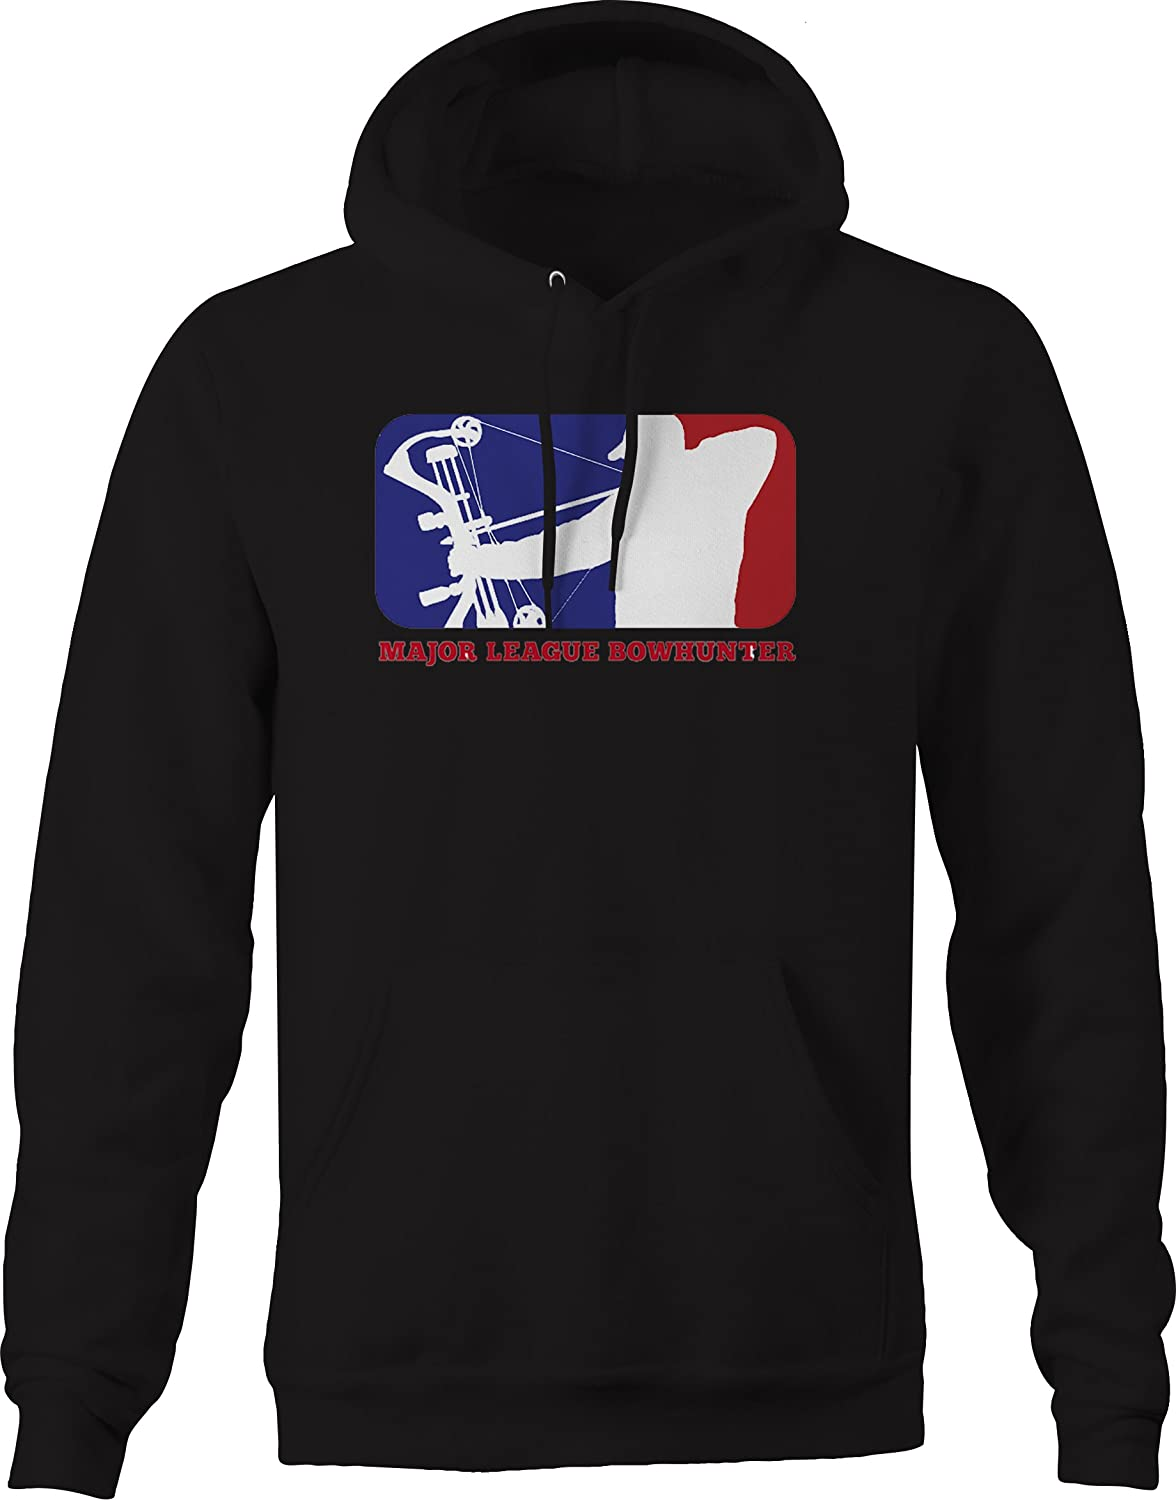 Champs Supply Mens Hoodie Major Save money Bowhunter US Bargain League Bow Hunting